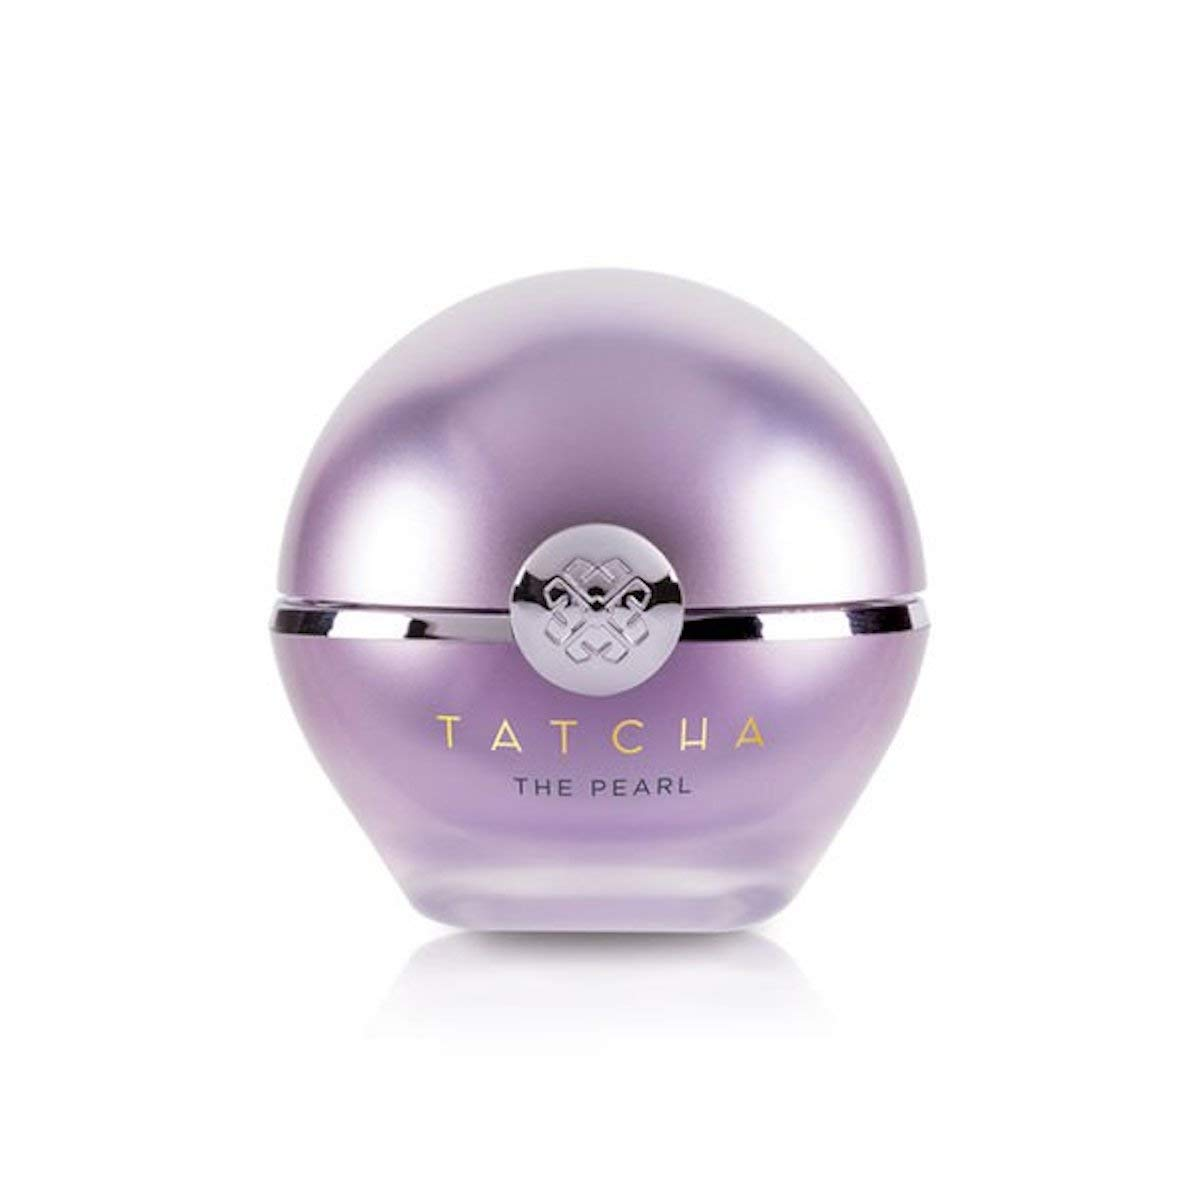 Tatcha The Pearl Tinted Eye Illuminating Treatment in Moonlight - 13 milliliters / 0.4 ounces